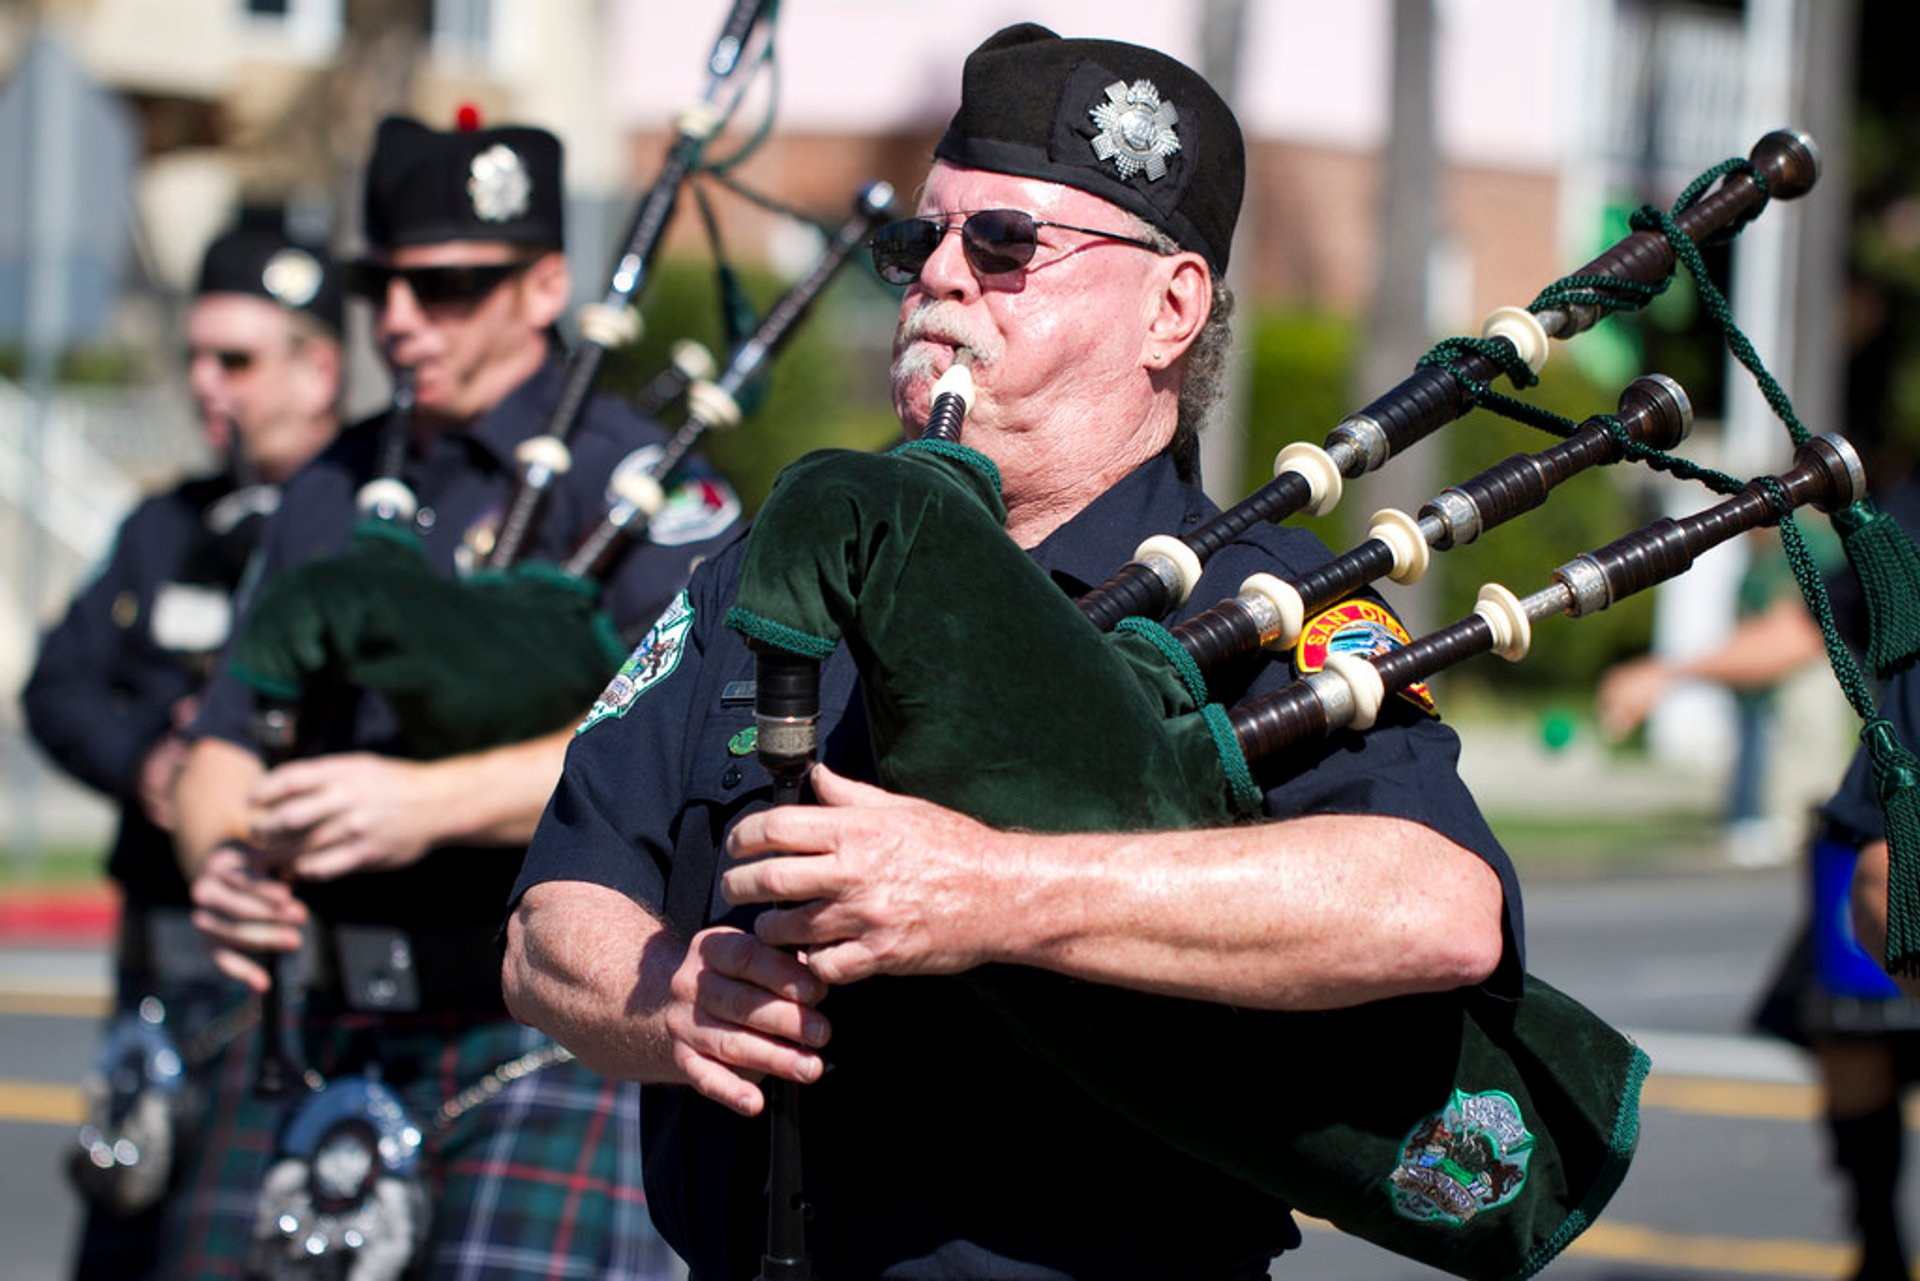 St. Patrick's Day Parade & Festival in San Diego - Best Season 2019